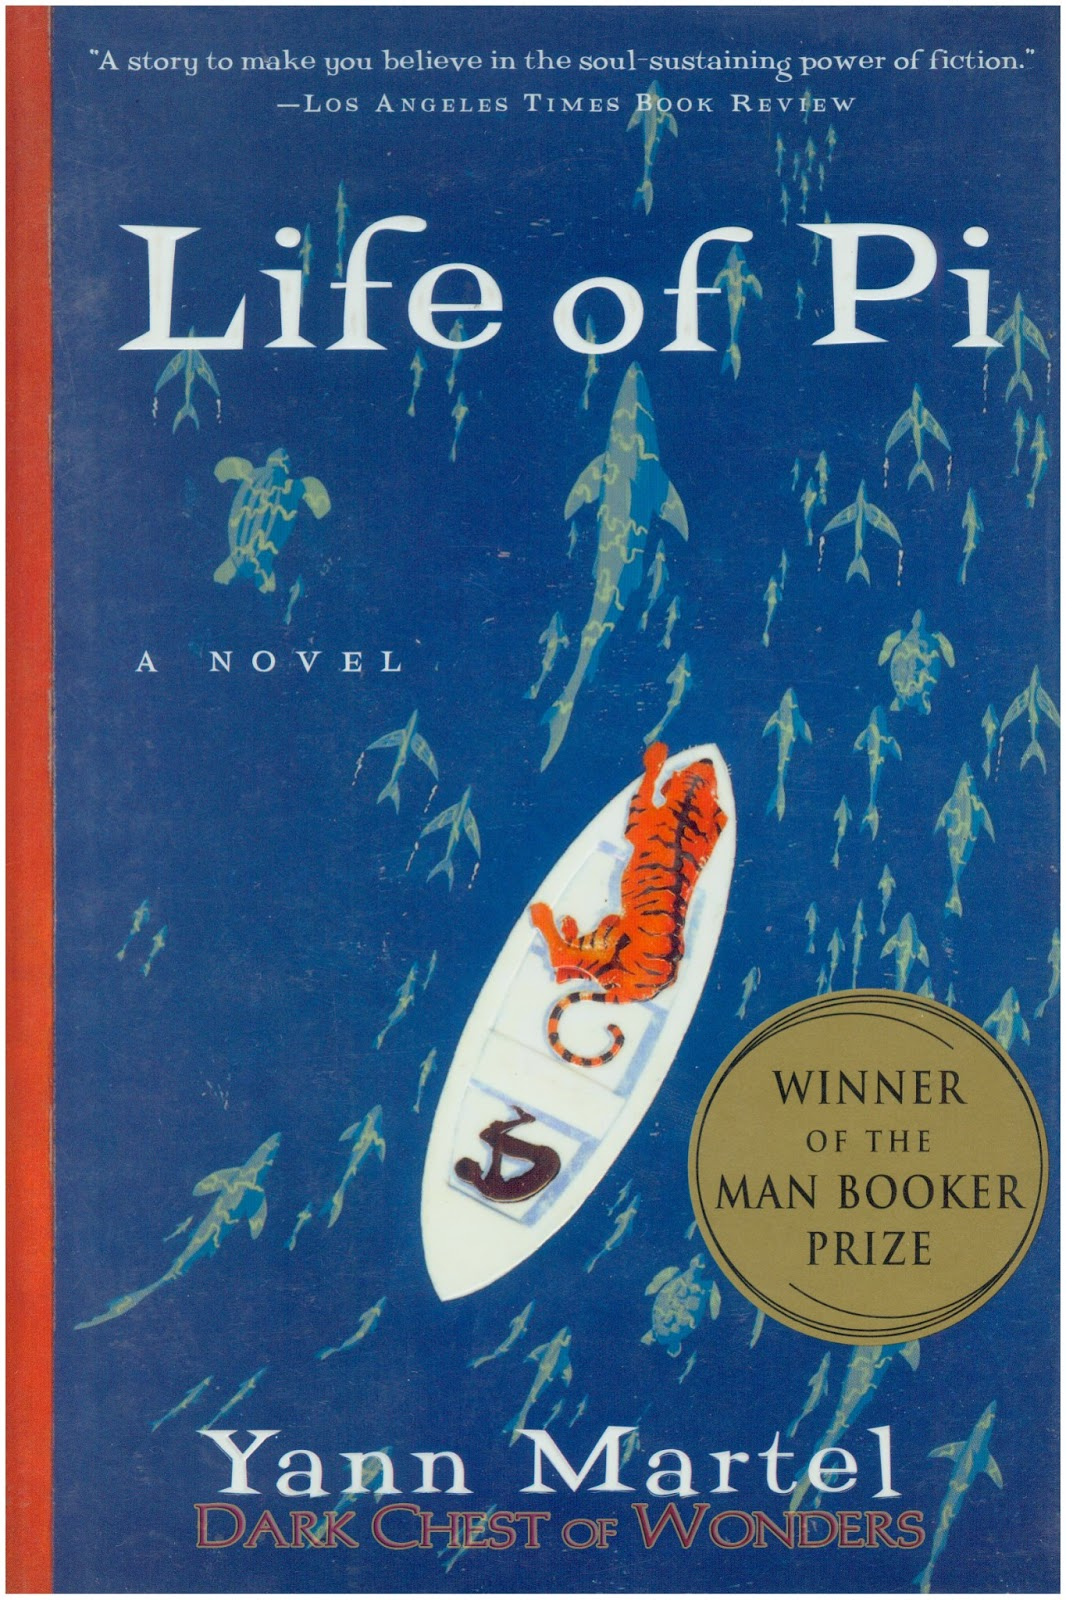 The life of pi book and movie differences